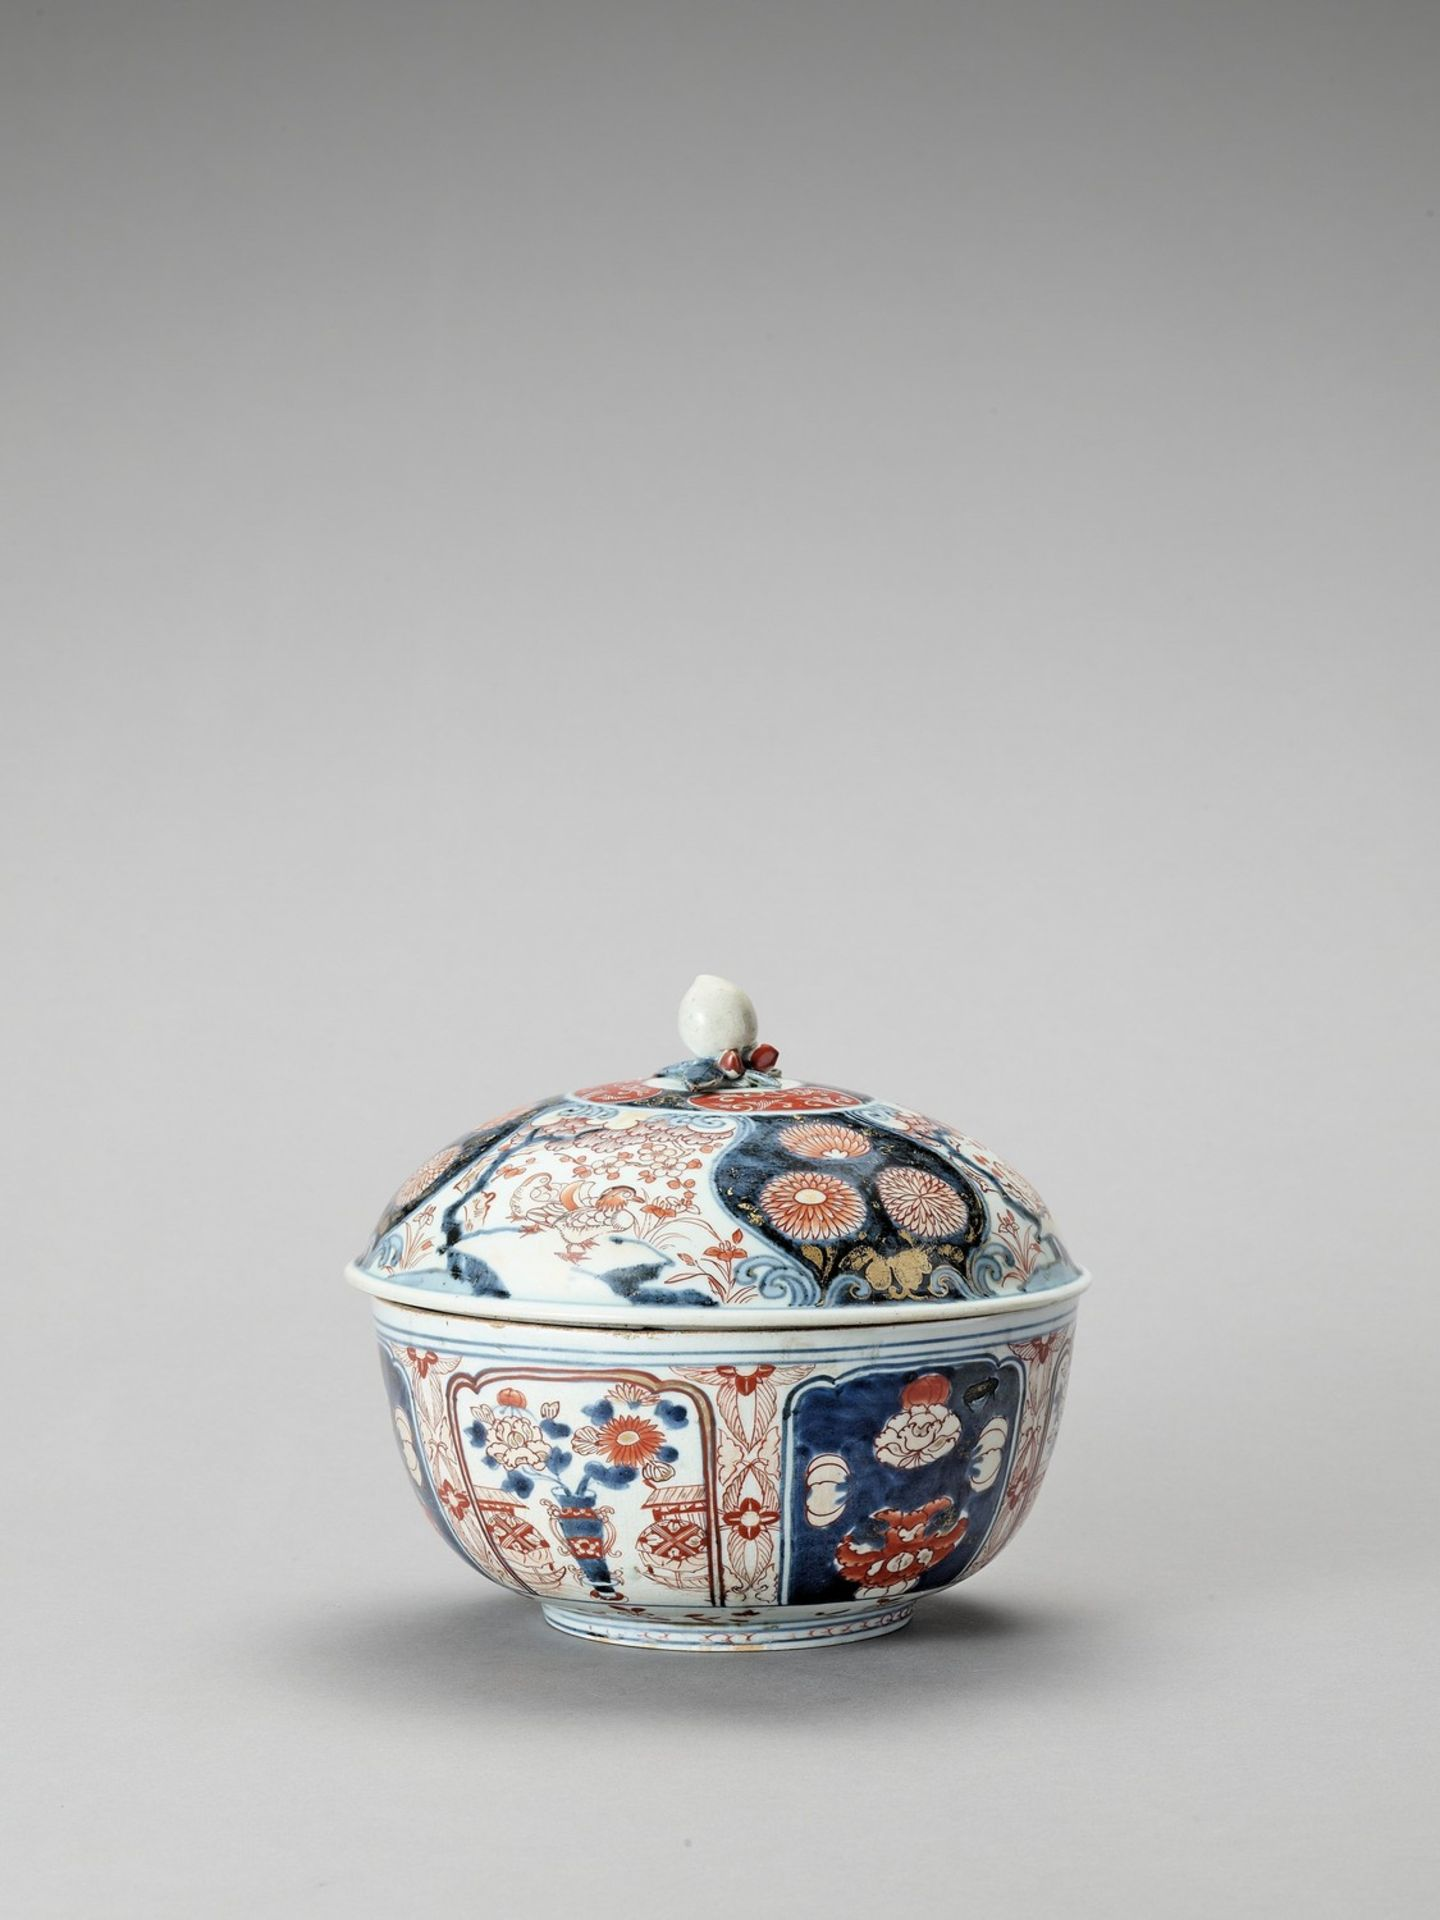 AN IMARI PORCELAIN BOX WITH COVER - Image 2 of 7